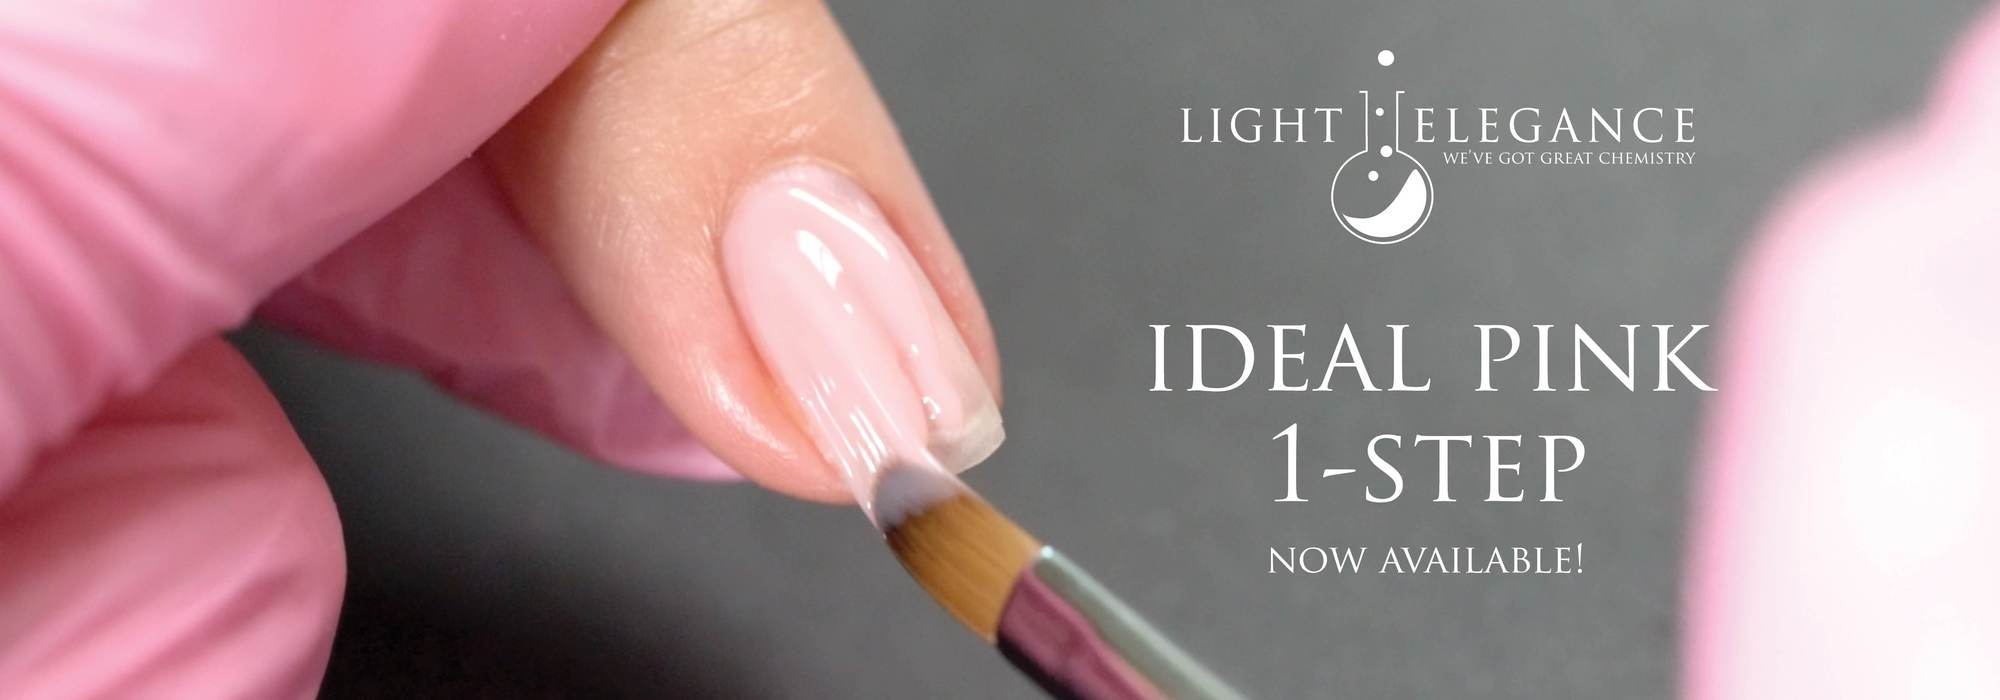 Ideal Pink 1-Step